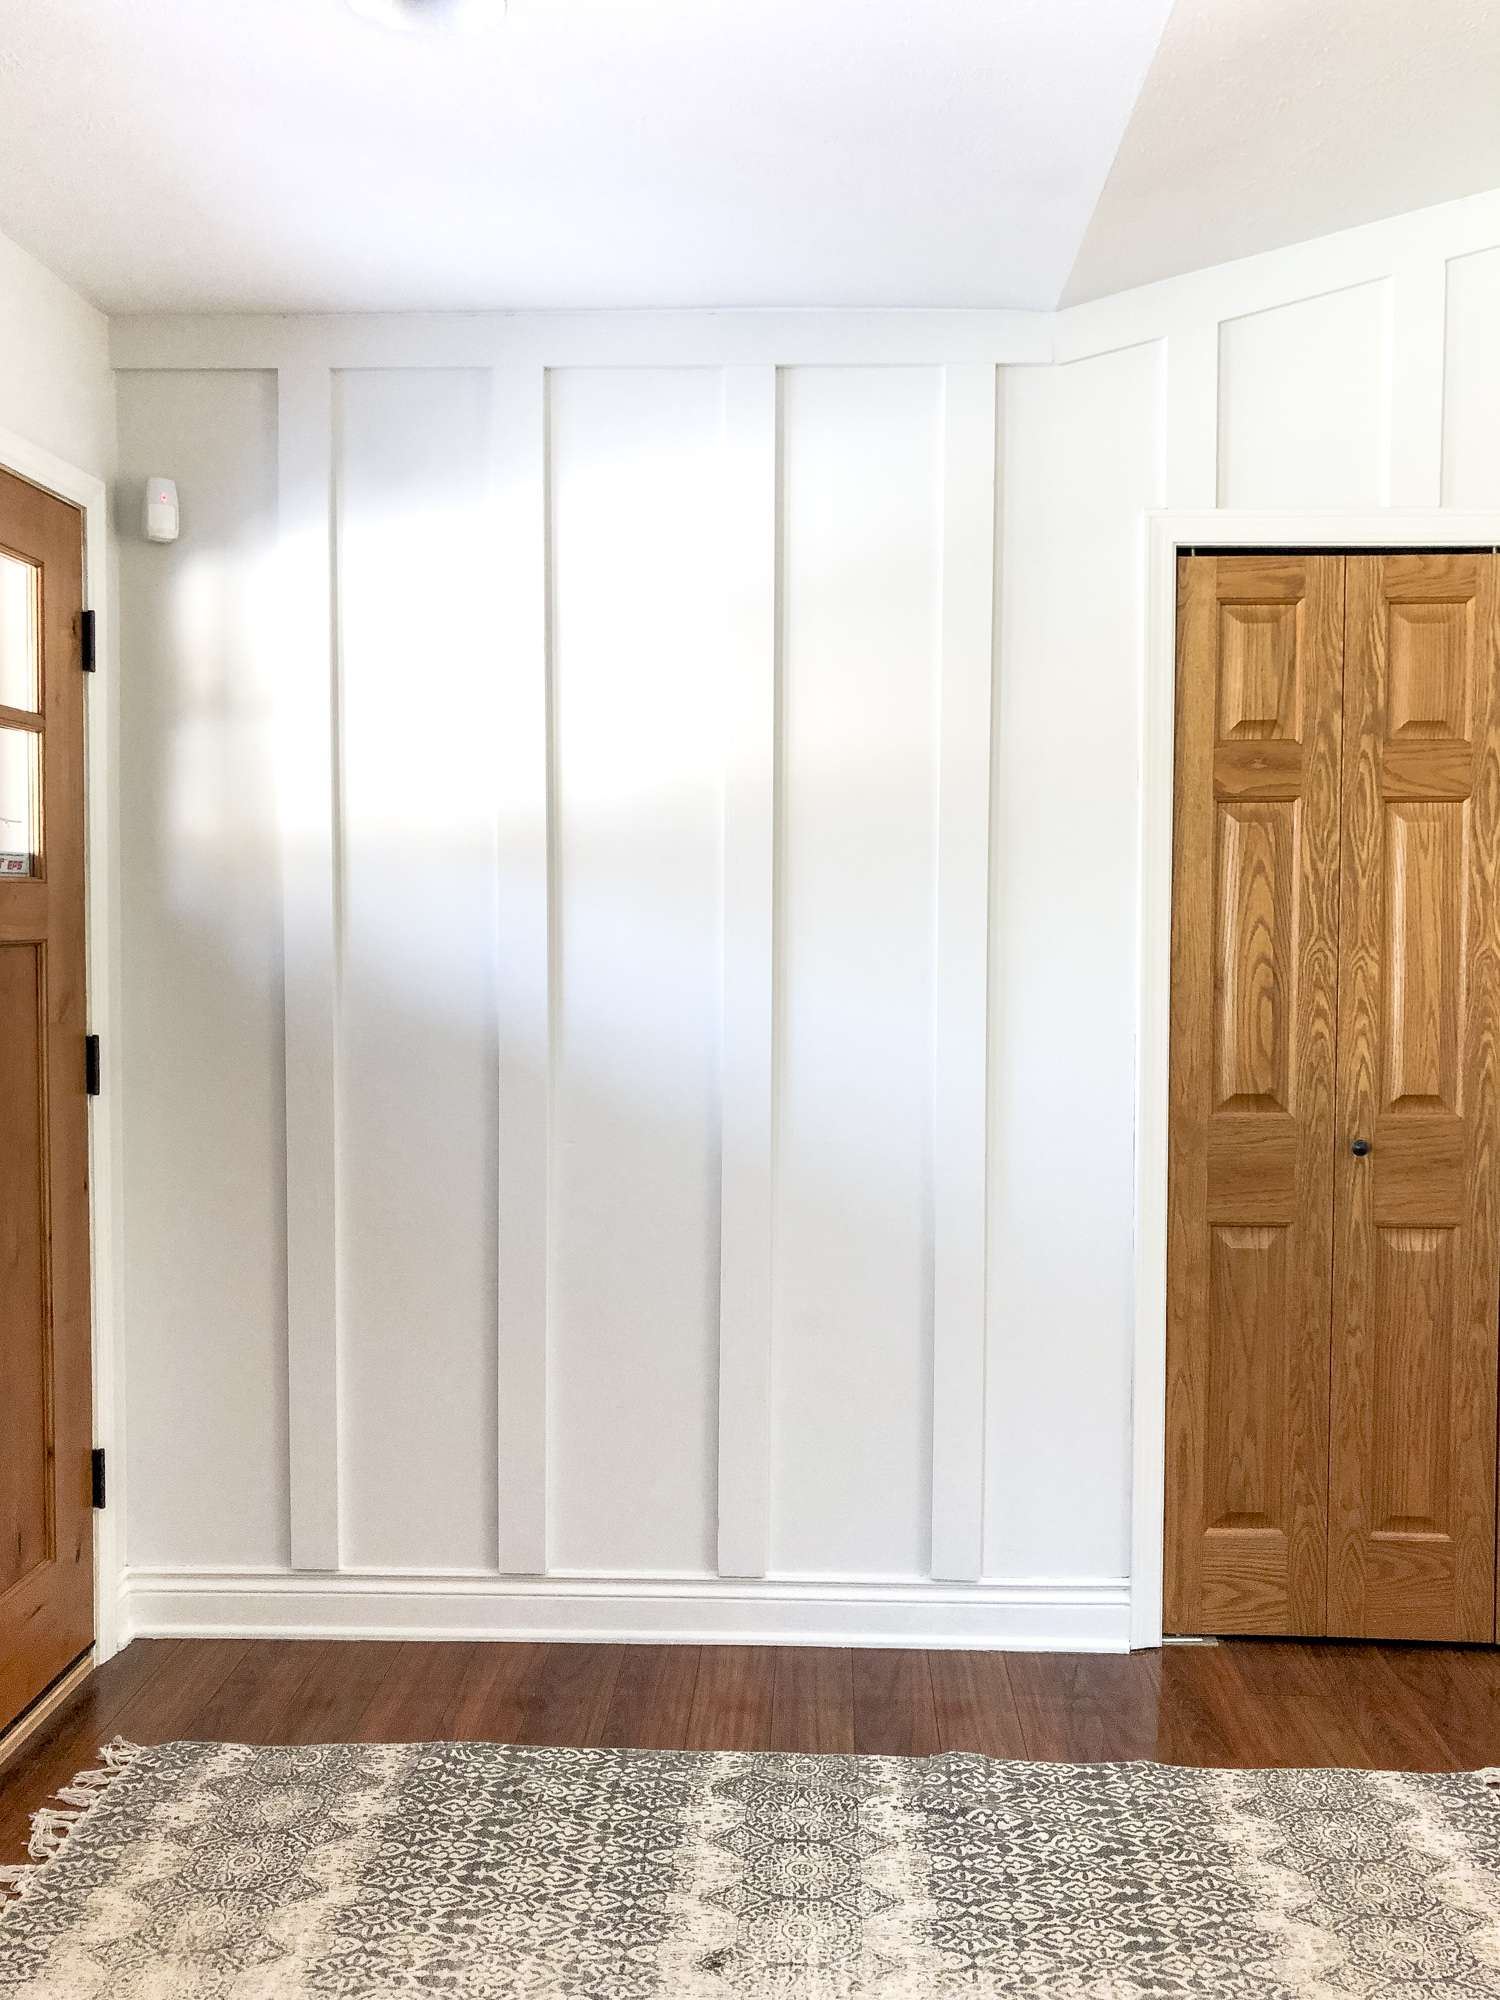 Board and batten is an easy and affordable way to create a custom look! Here is a full tutorial for how to install board and batten as an accent wall! #fromhousetohaven #boardandbatten #accentwall